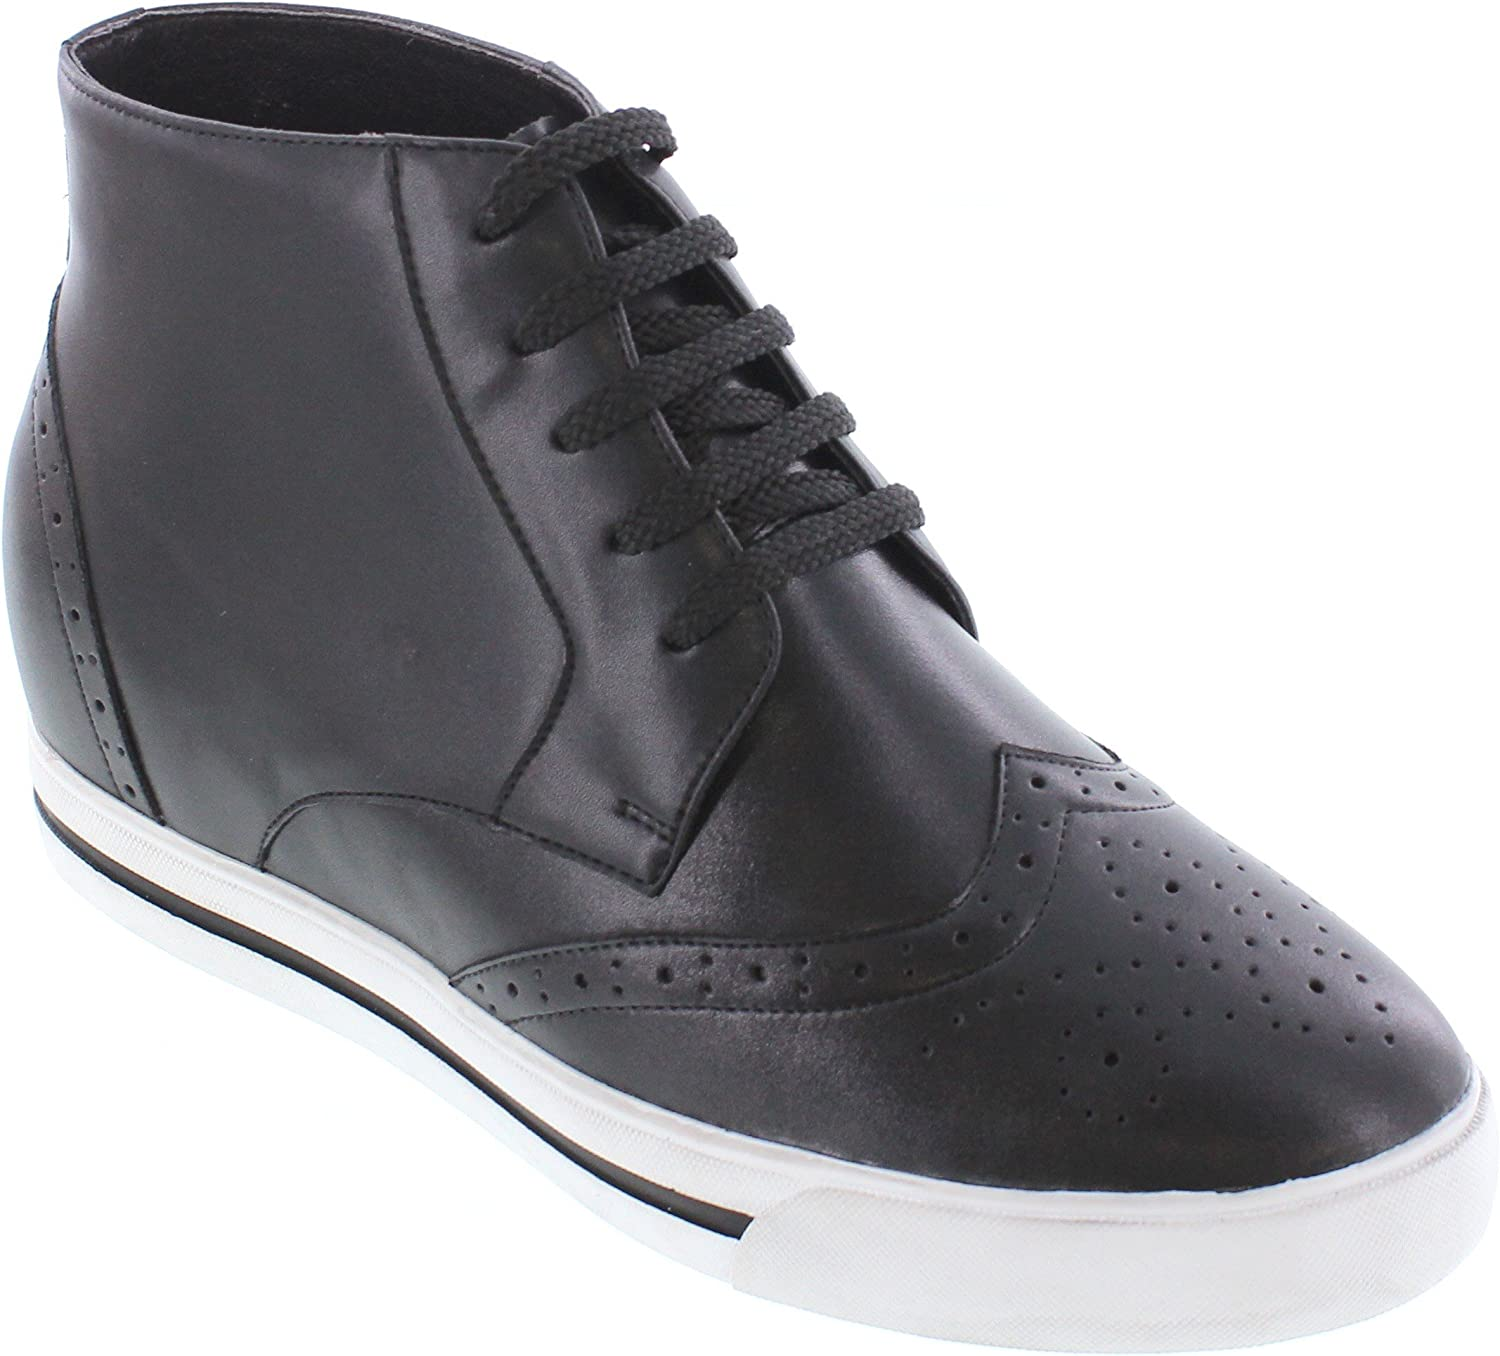 CALTO Men's Invisible Height Increasing Elevator shoes - Black Primium Leather Lace-up Wing-tip Fashion Sneakers - 3 Inches Taller - Y36081